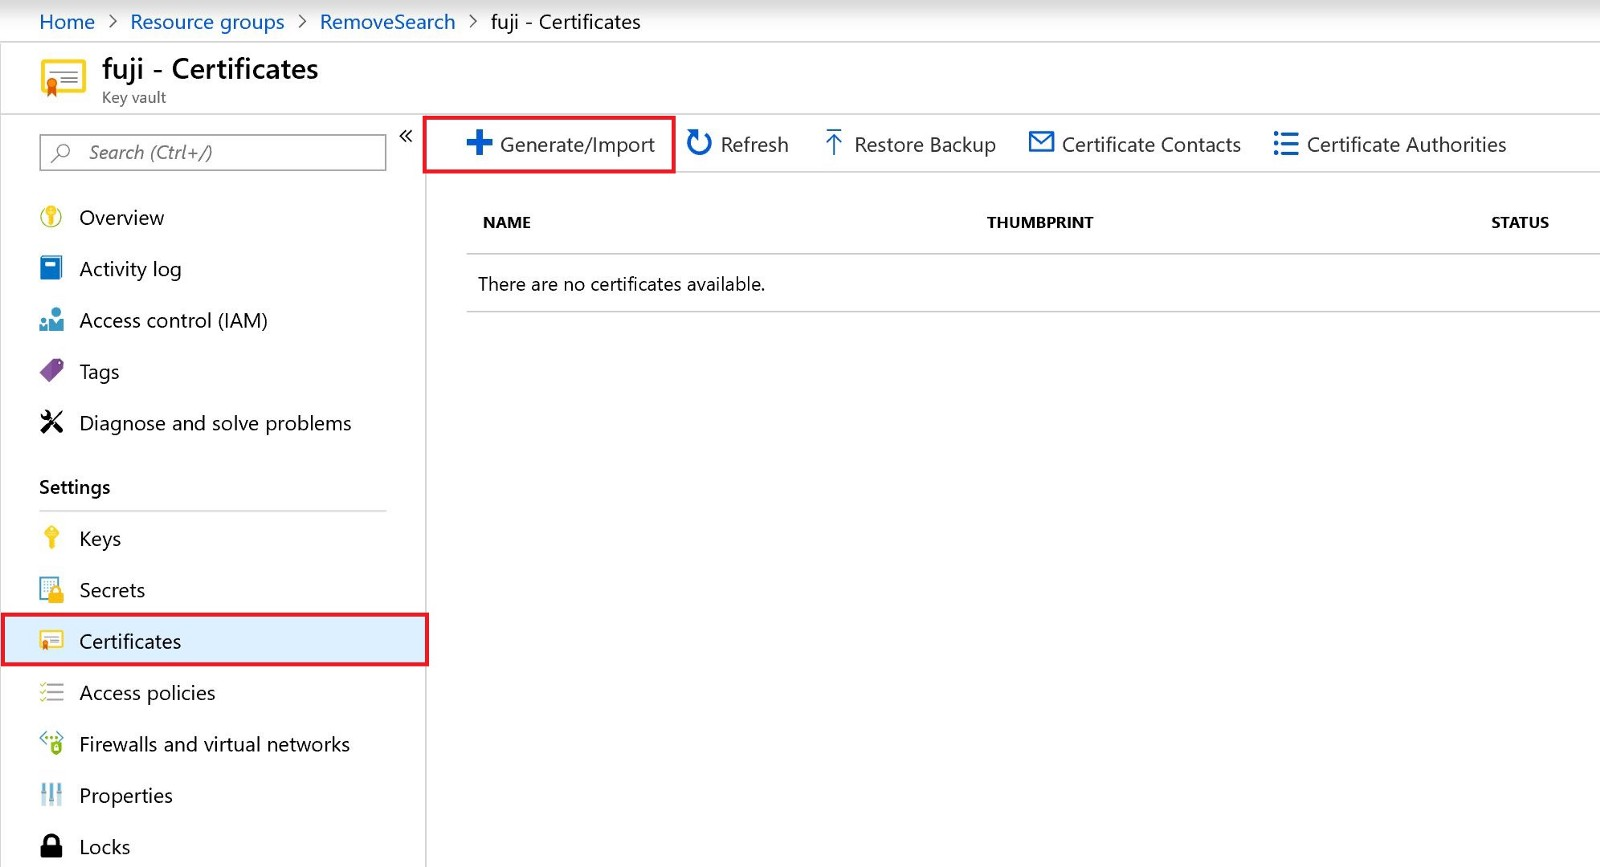 Generating Self Signed Certificate With Keyvalt And Enable To Access